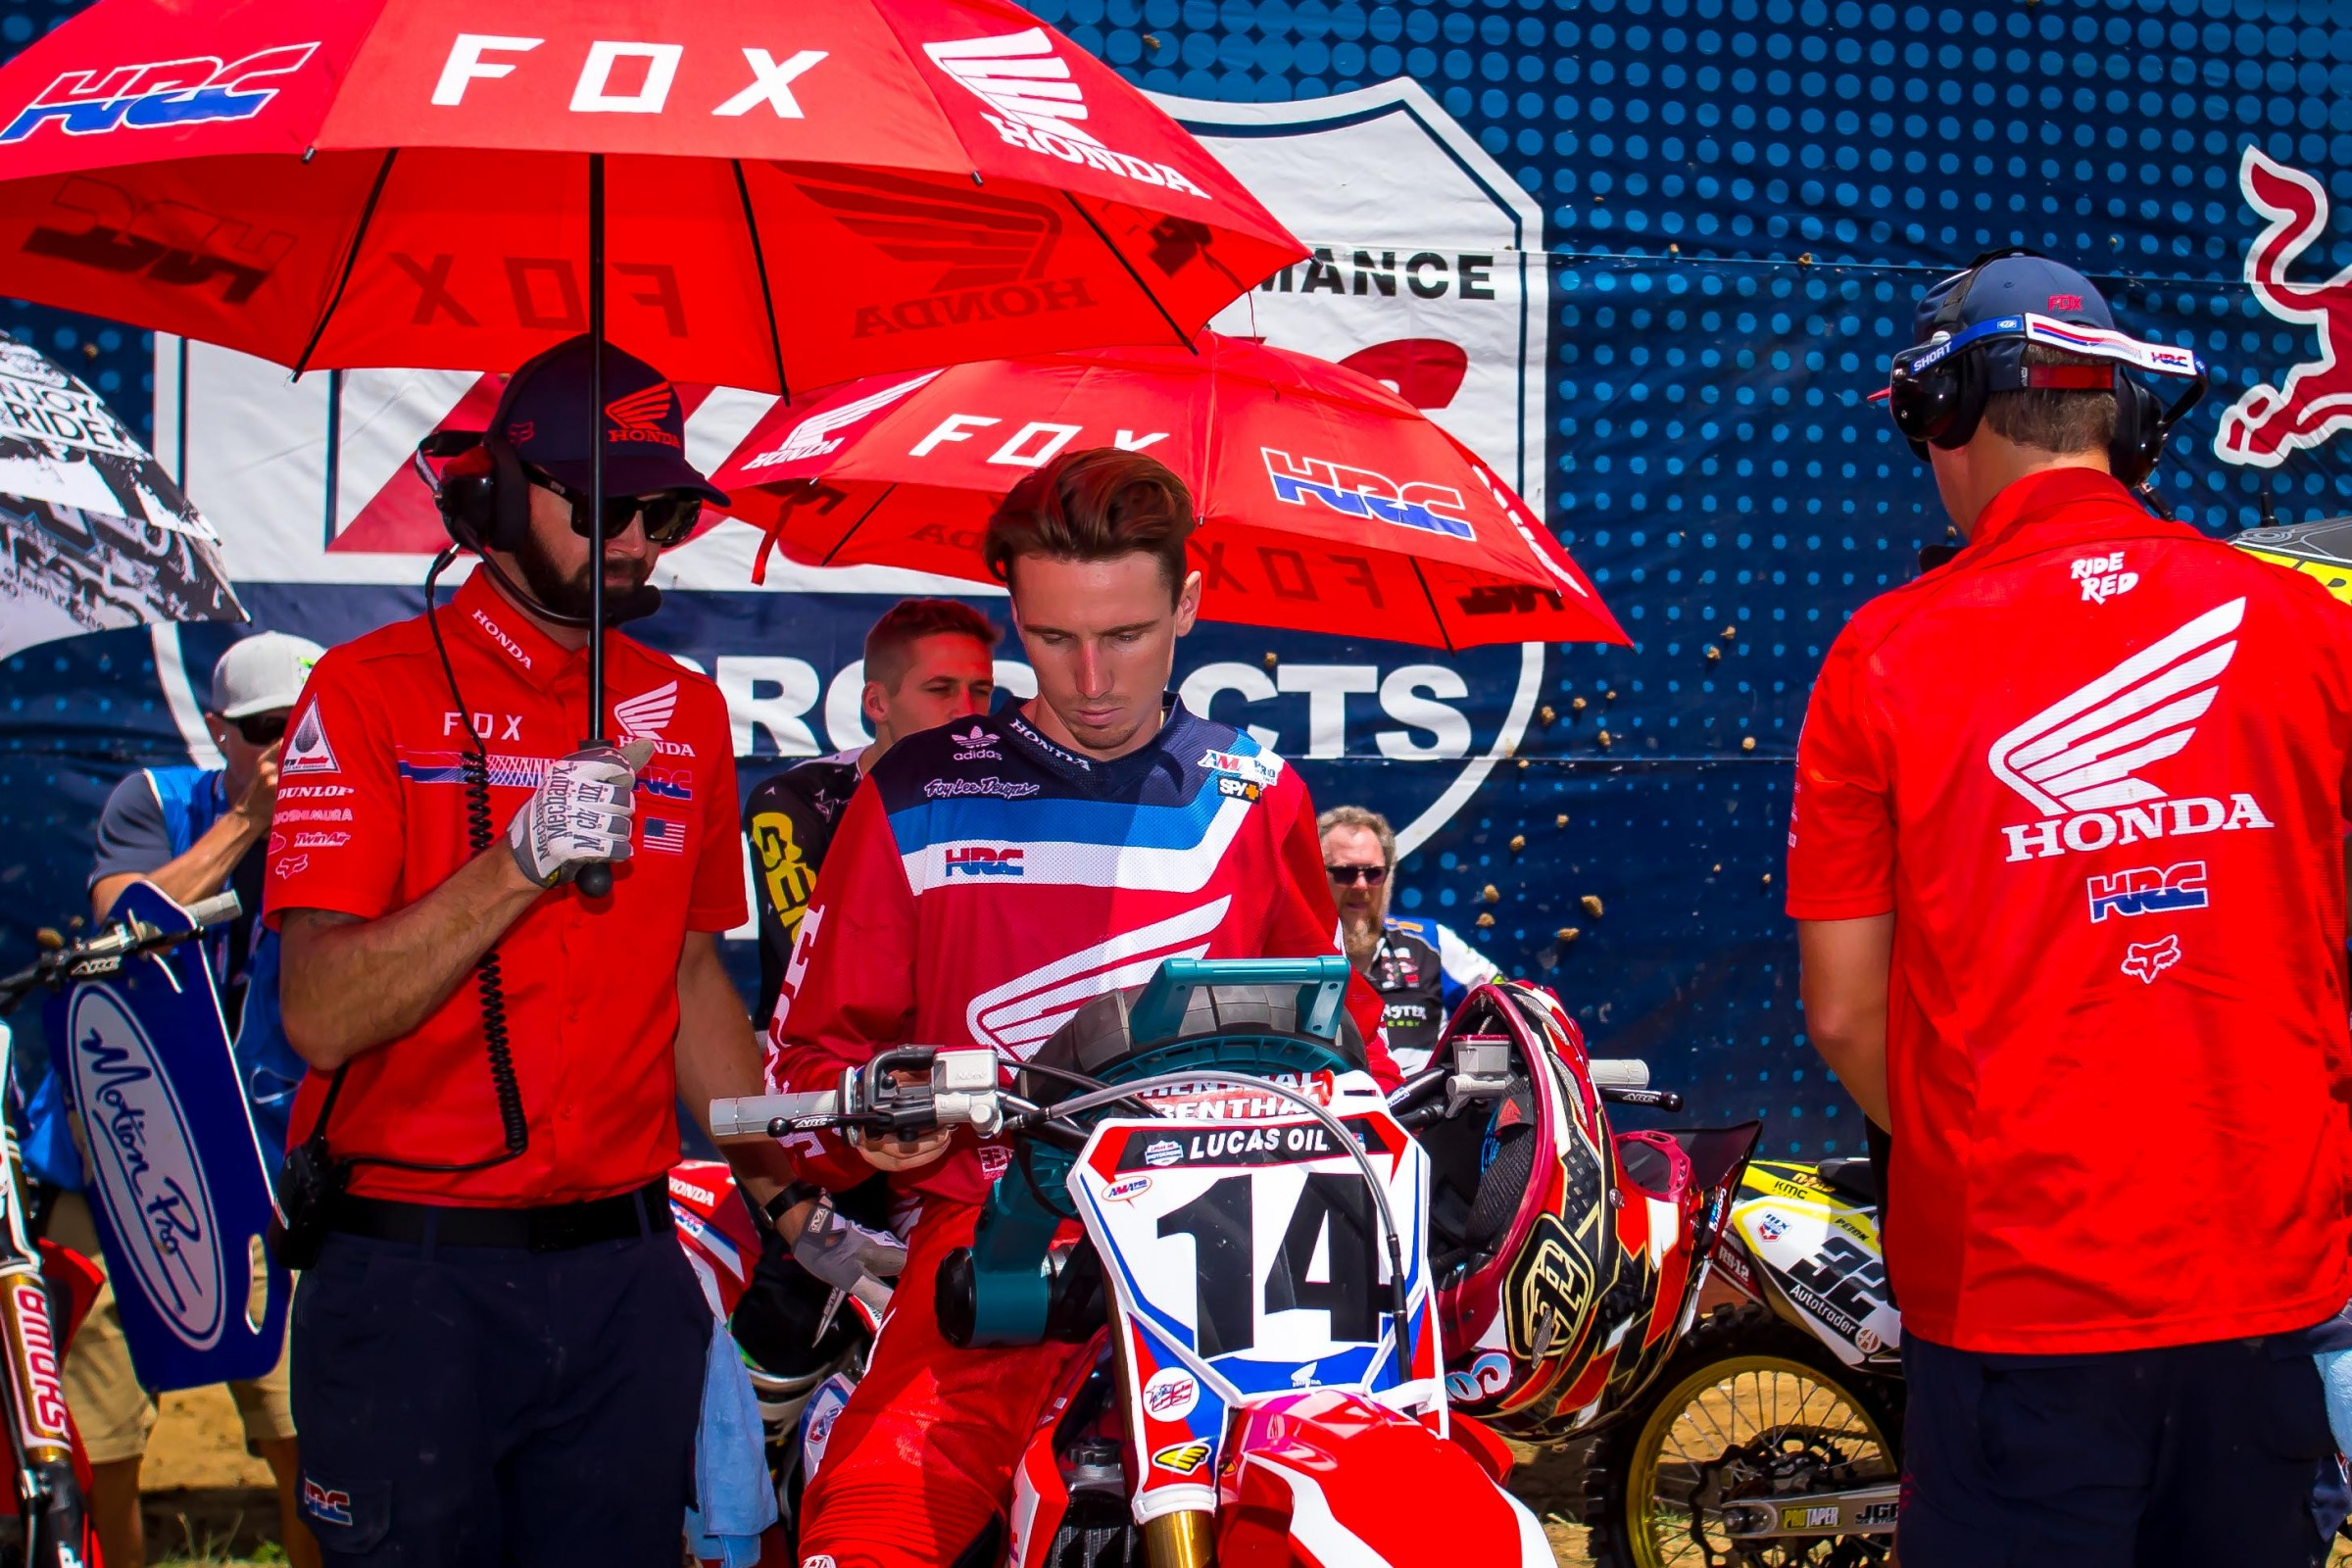 Mandie has been with Honda HRC for more than five years and works with riders like Cole Seely (above), Christian Craig, and Ken Roczen.